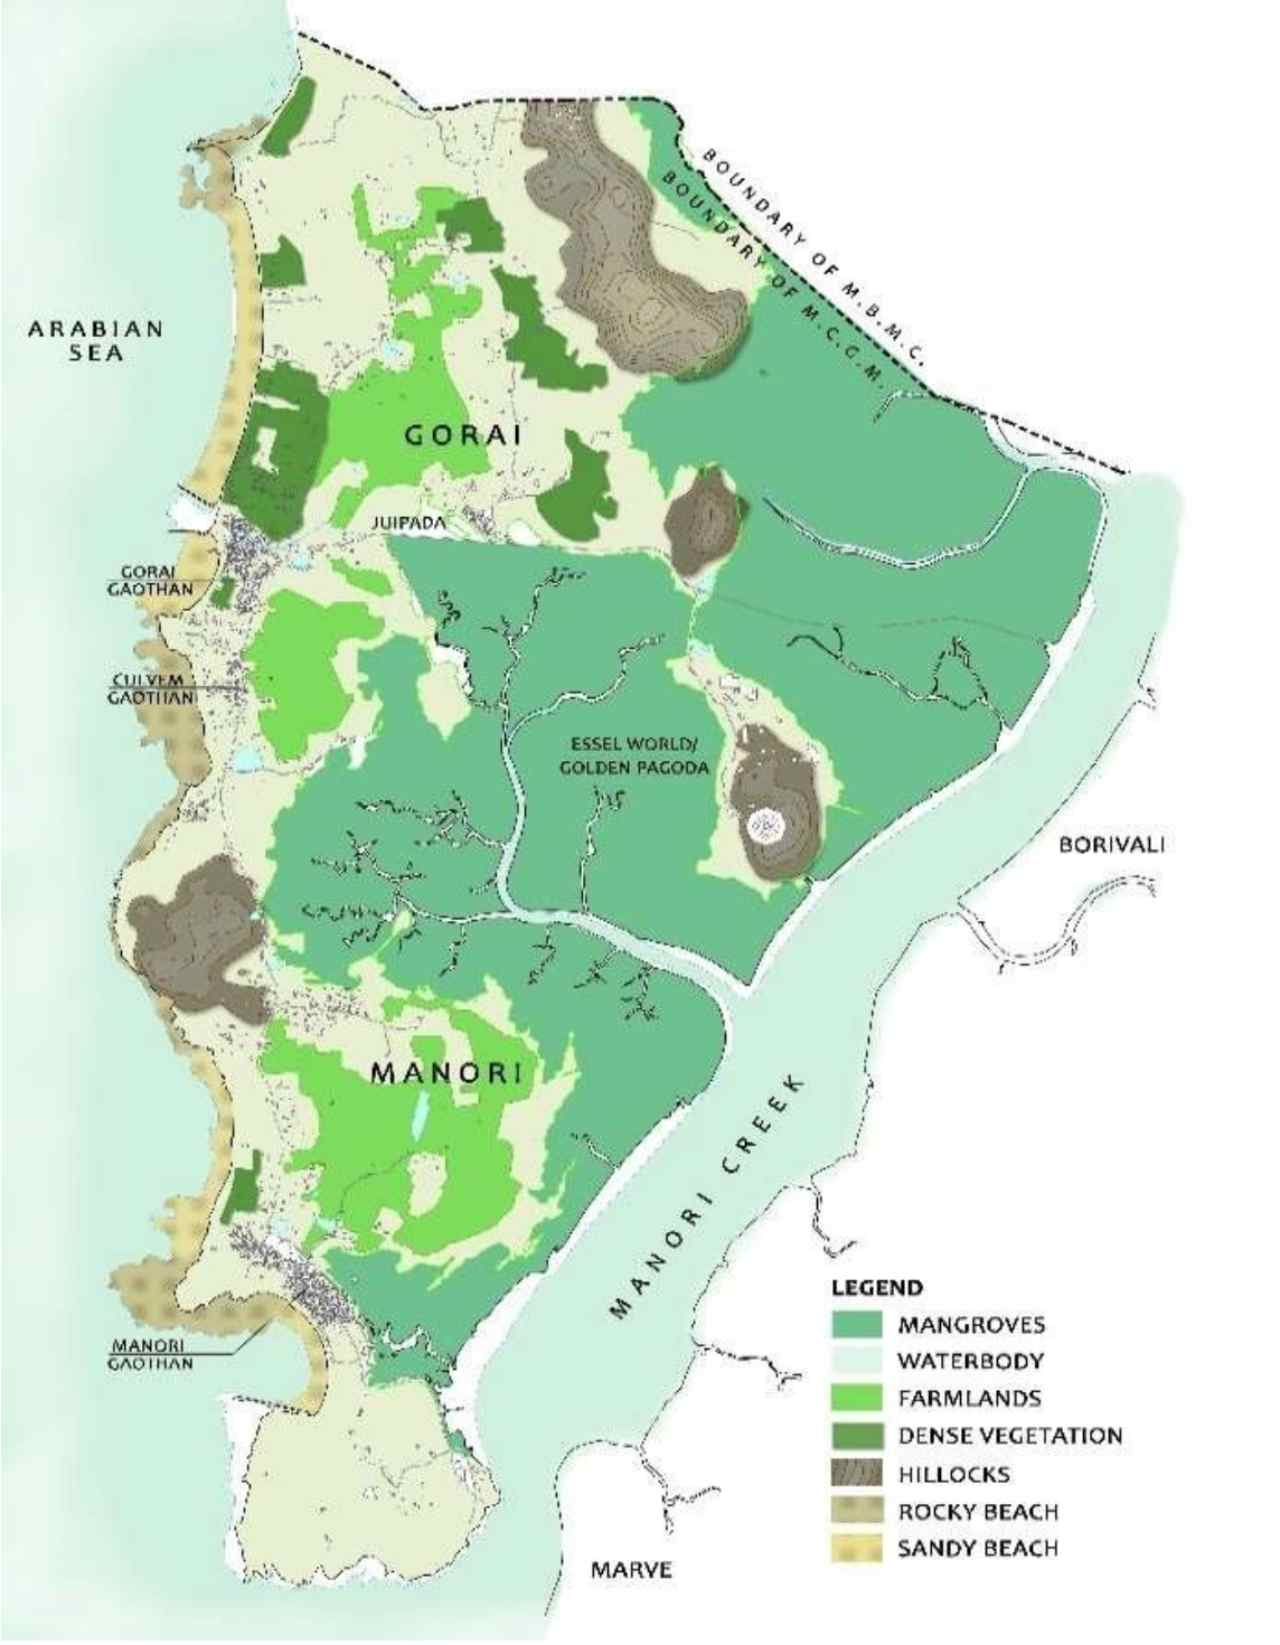 Map showing Natural Features in Gorai-Manori Area. Image: Author provided